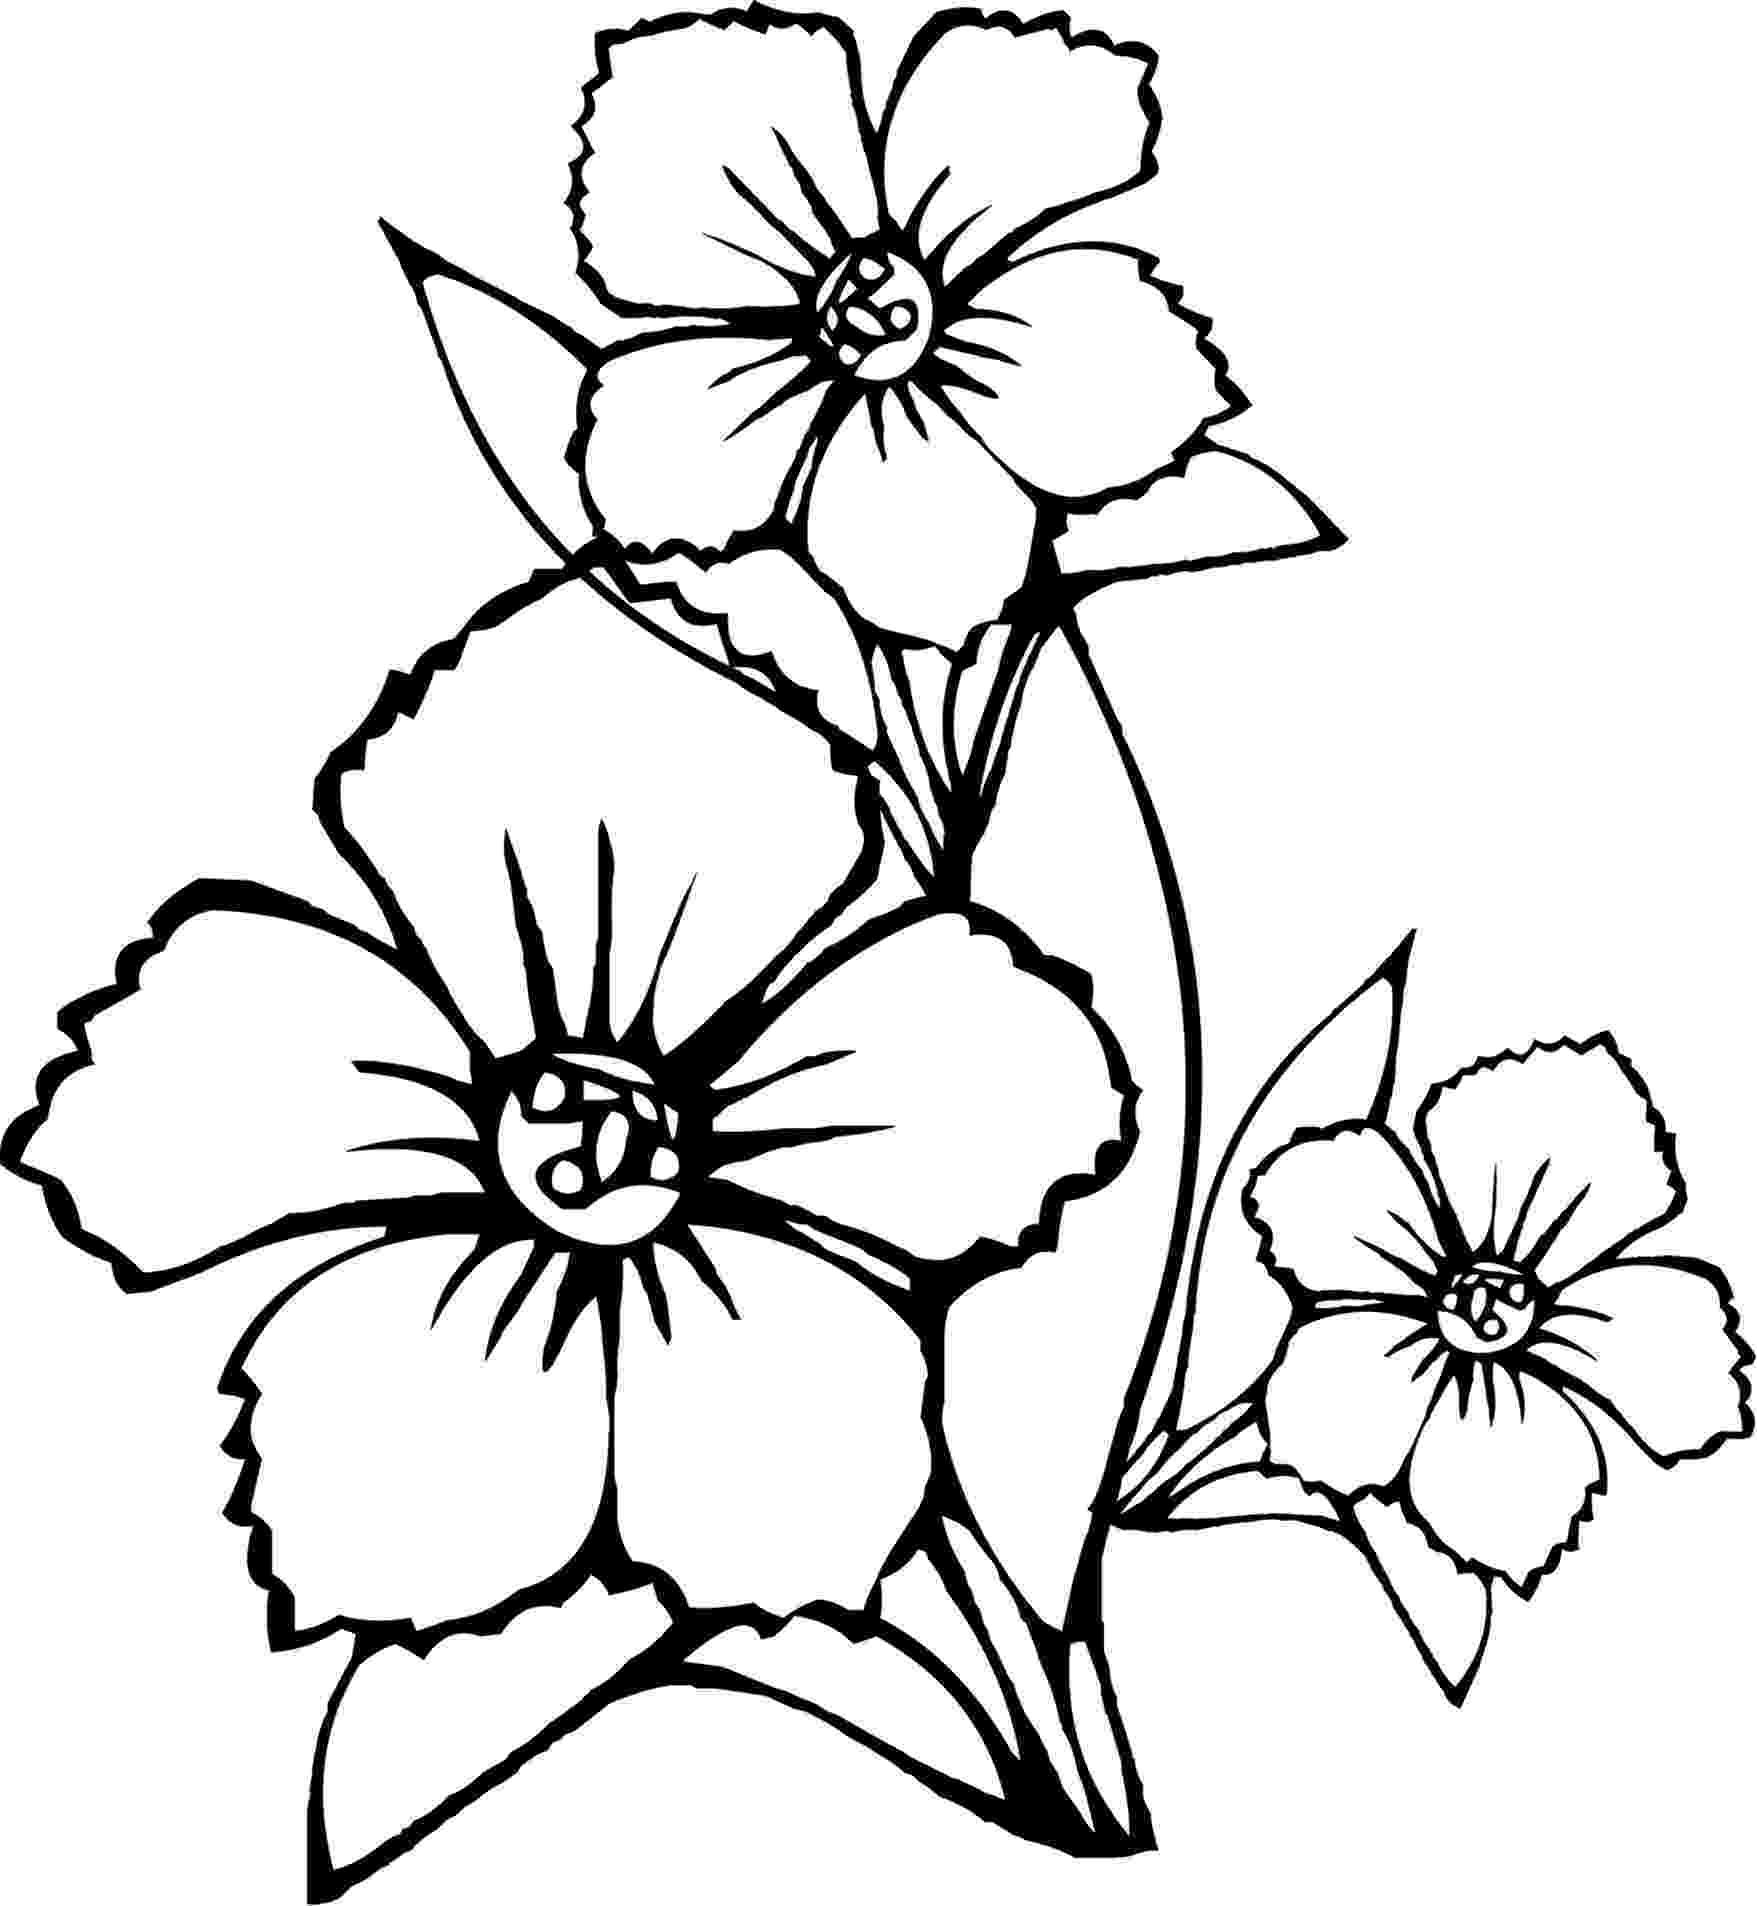 coloring flower pictures free printable flower coloring pages for kids best flower coloring pictures